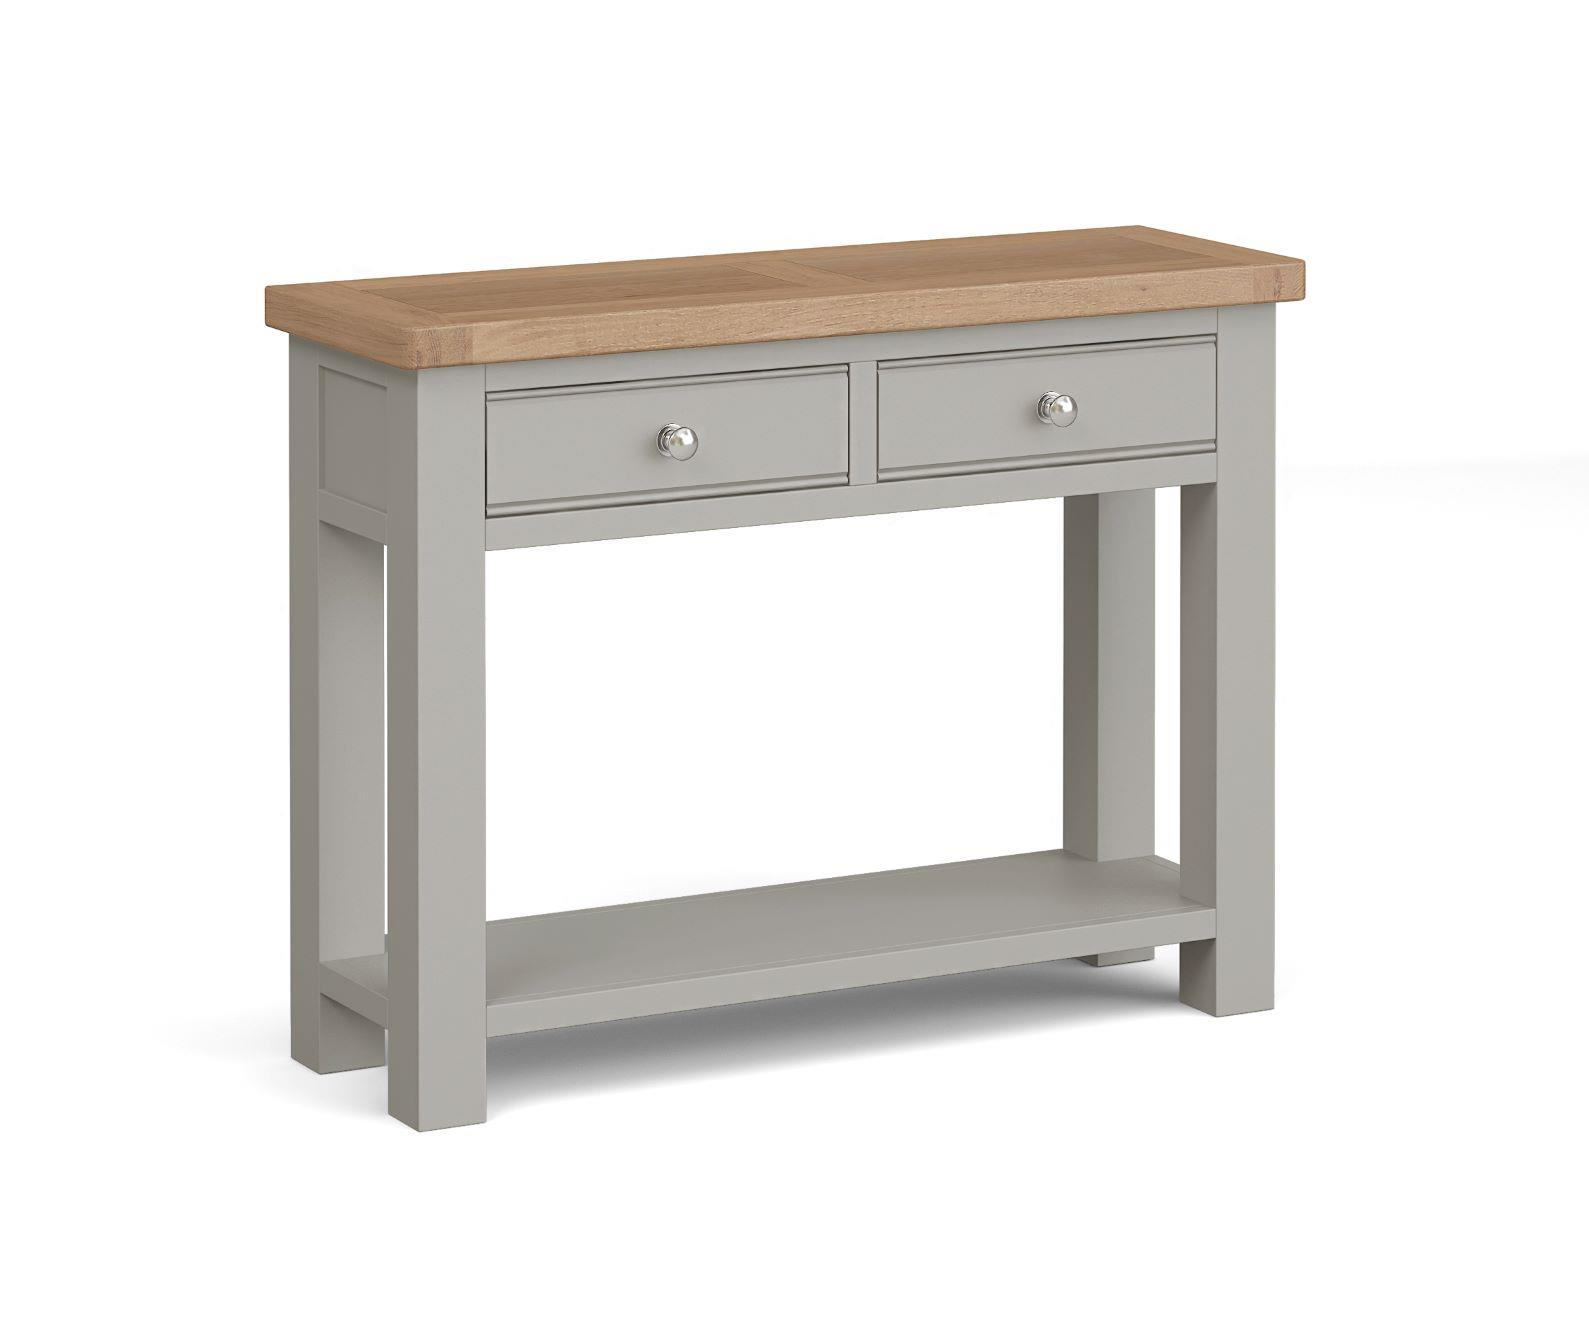 SOMERSET Console Table by Corndell